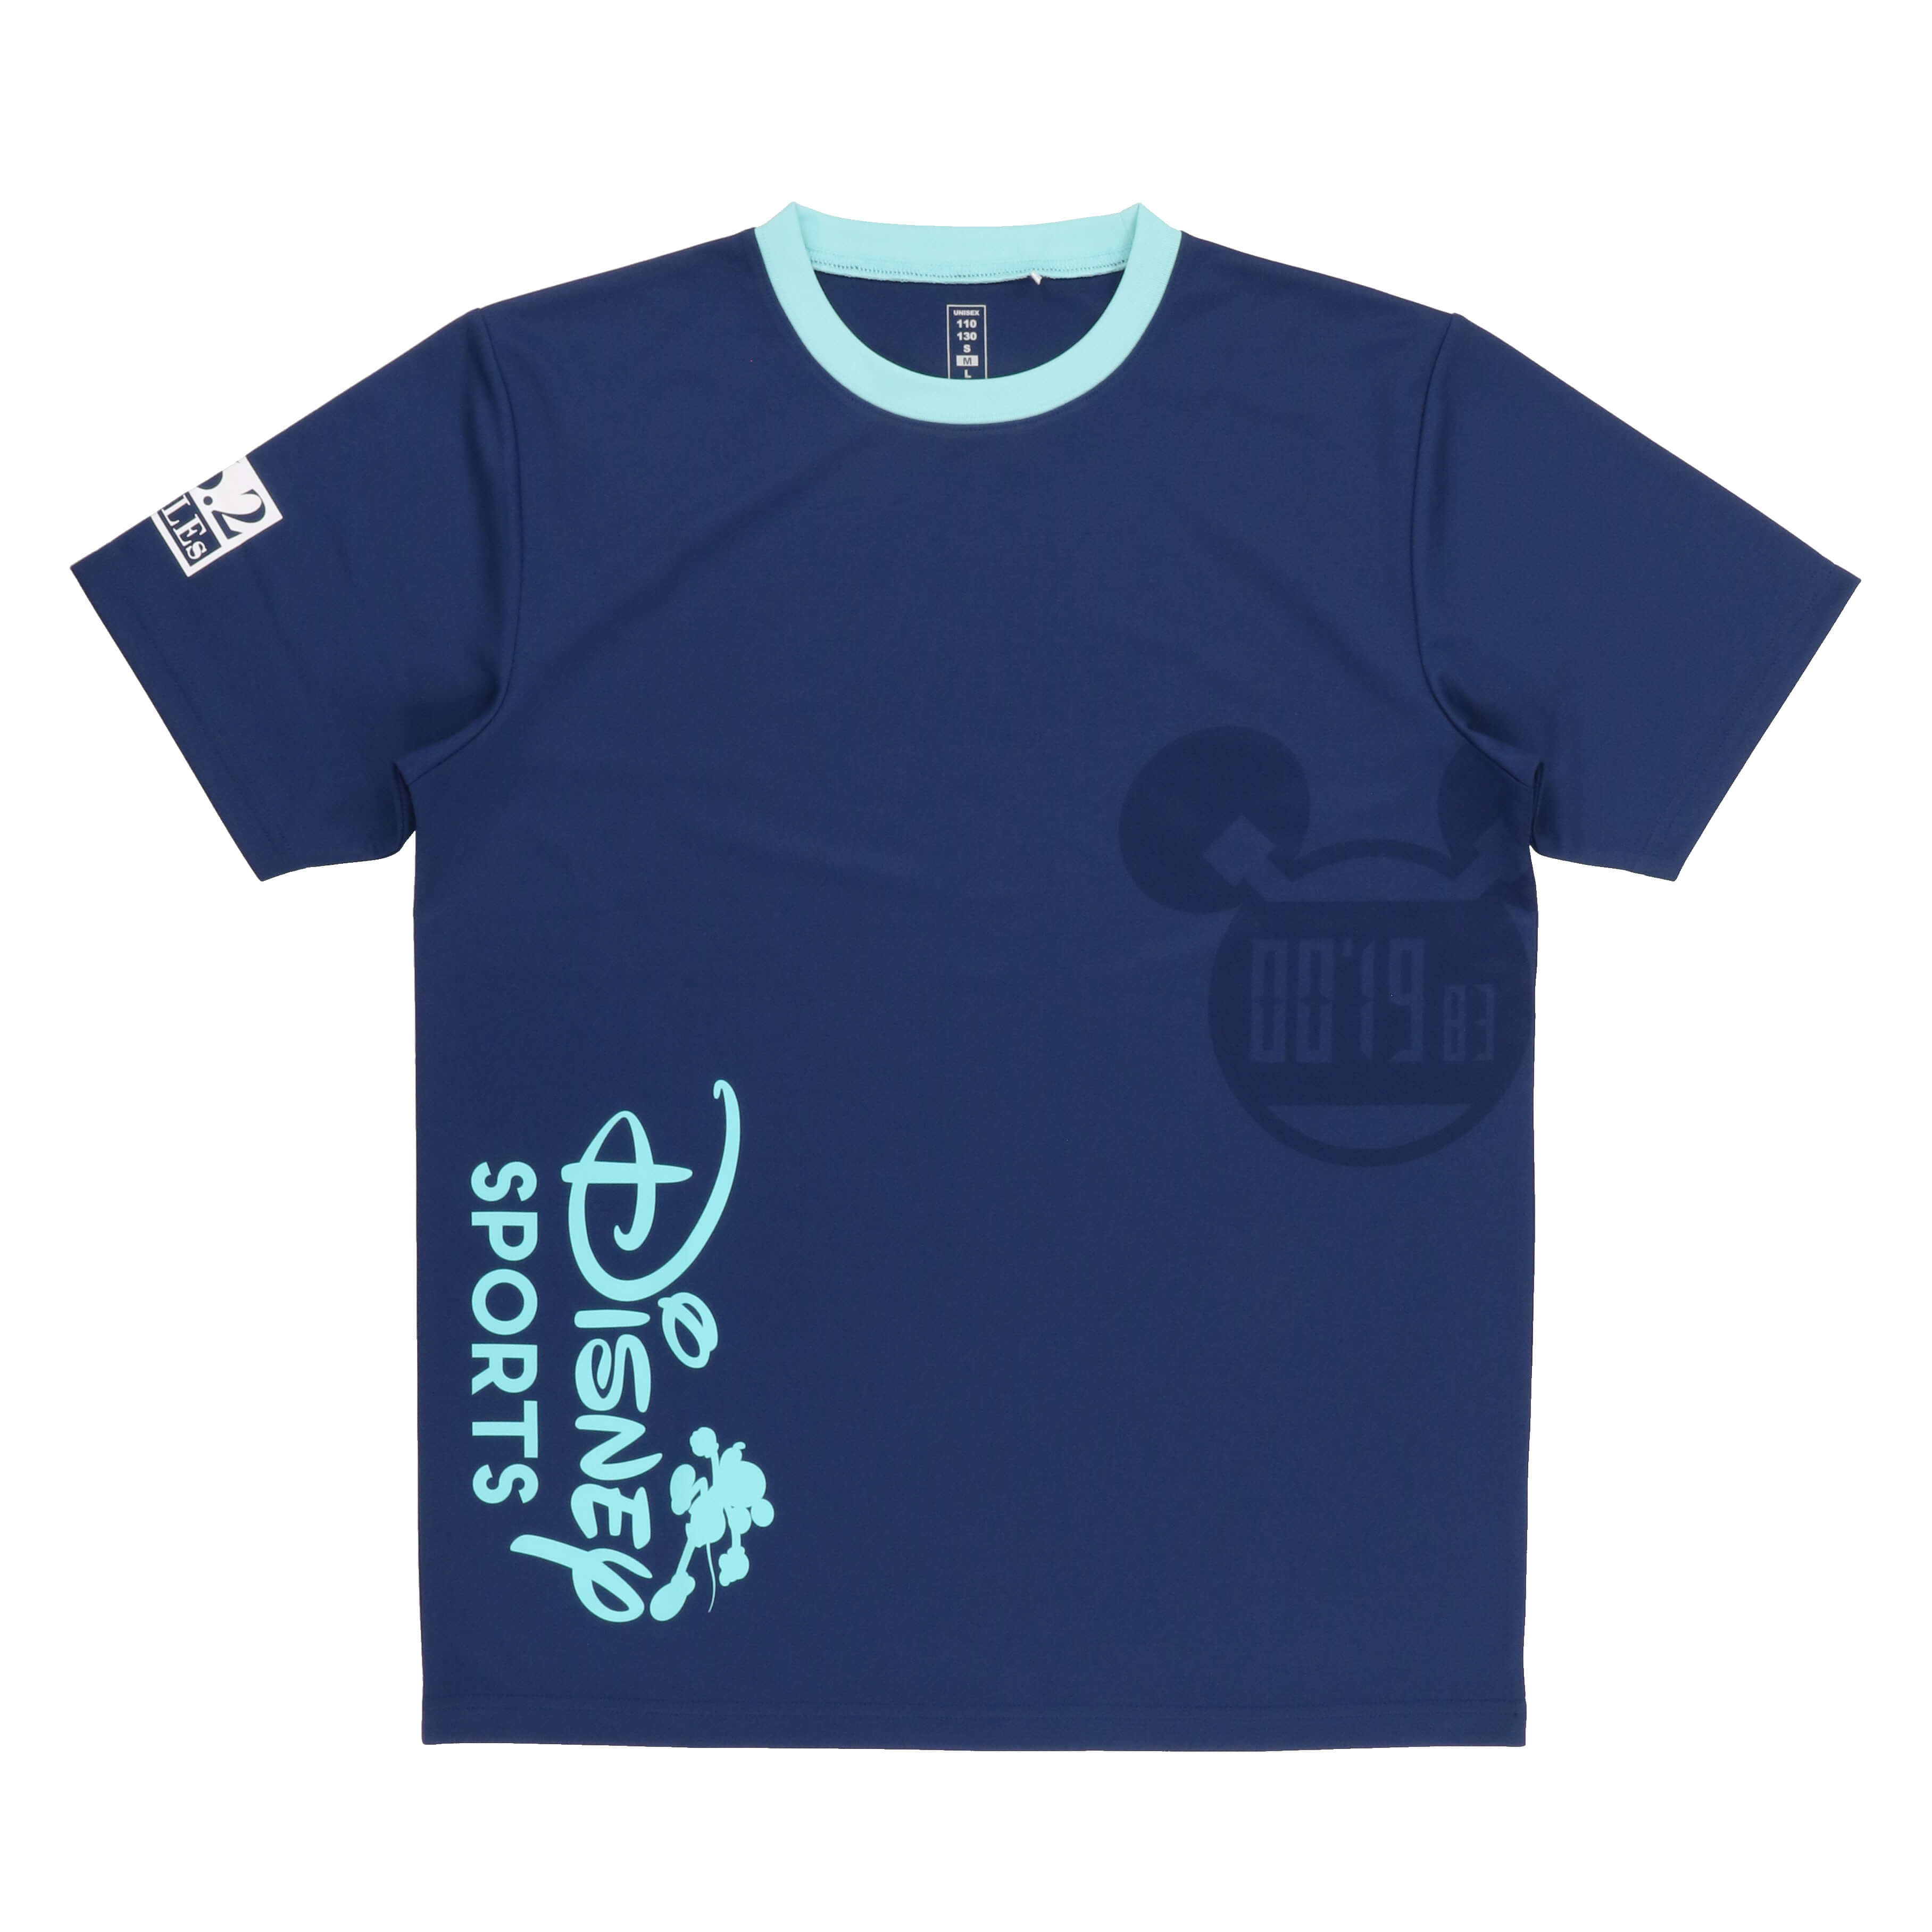 1a8fe668238e6 Tokyo Disney Resort® Launches Disney SPORTS Clothing Line